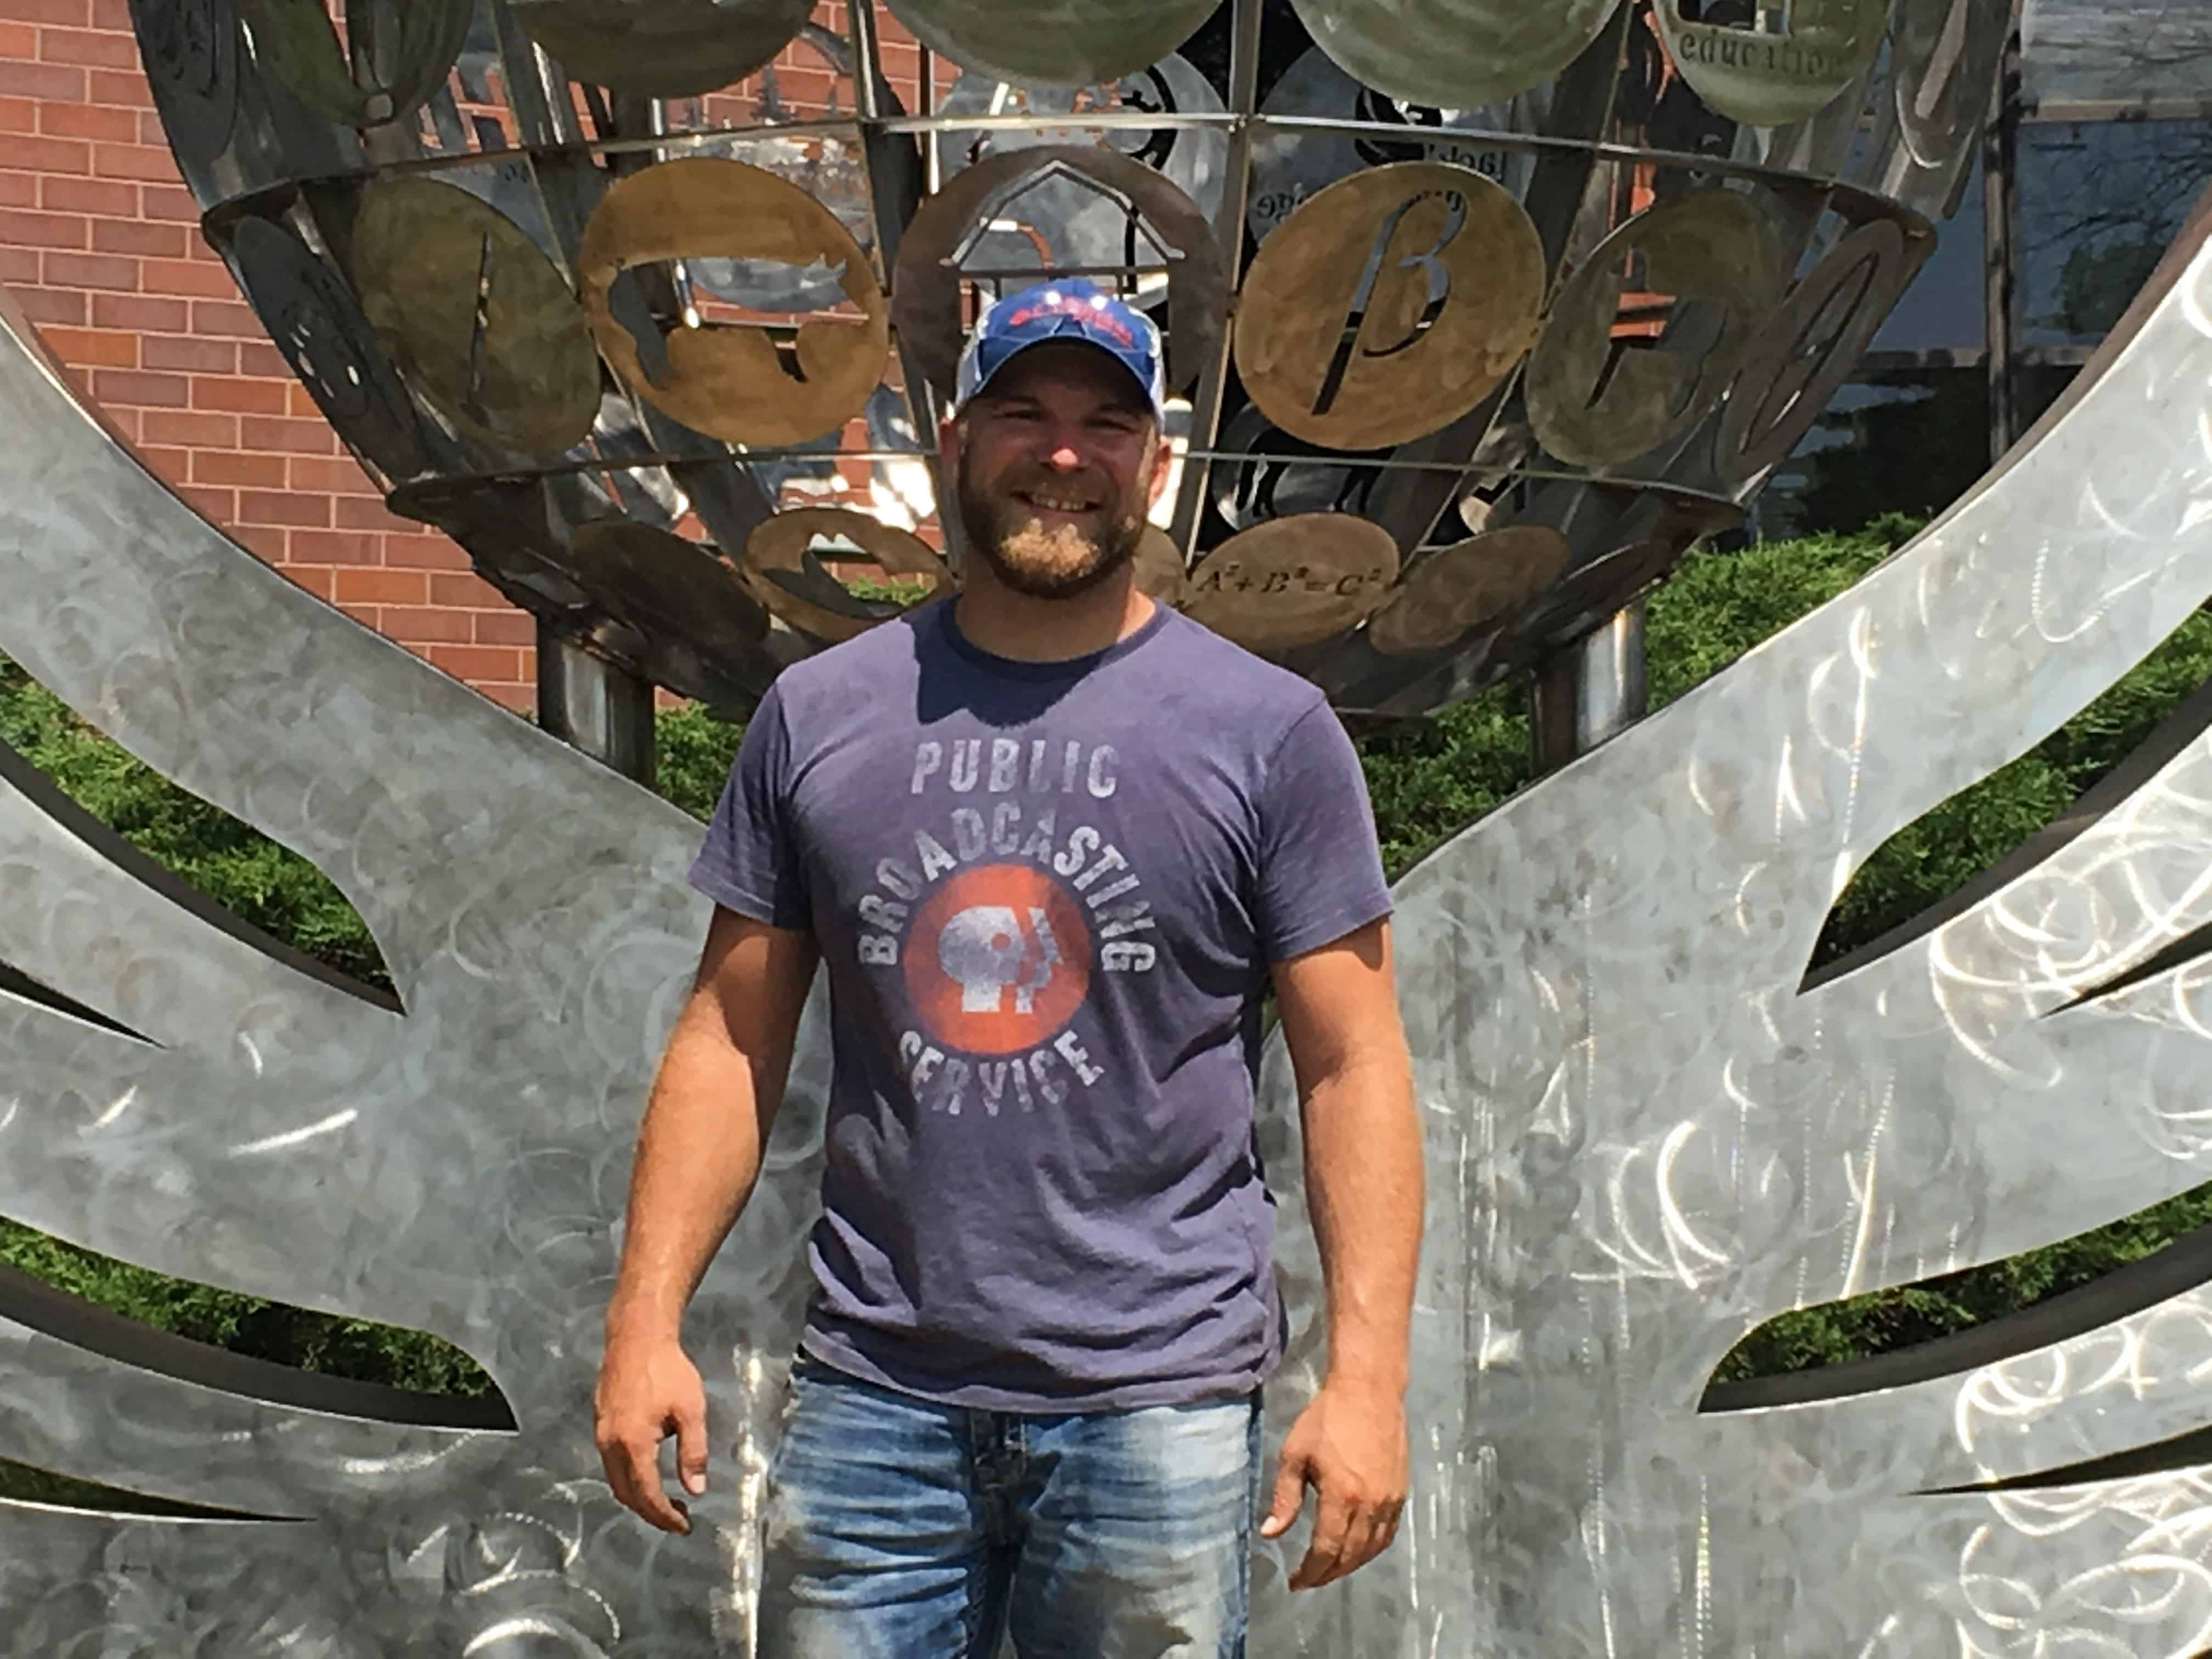 artist Duke Oursler standing in front of Brink - large metal sculpture with globe & wings